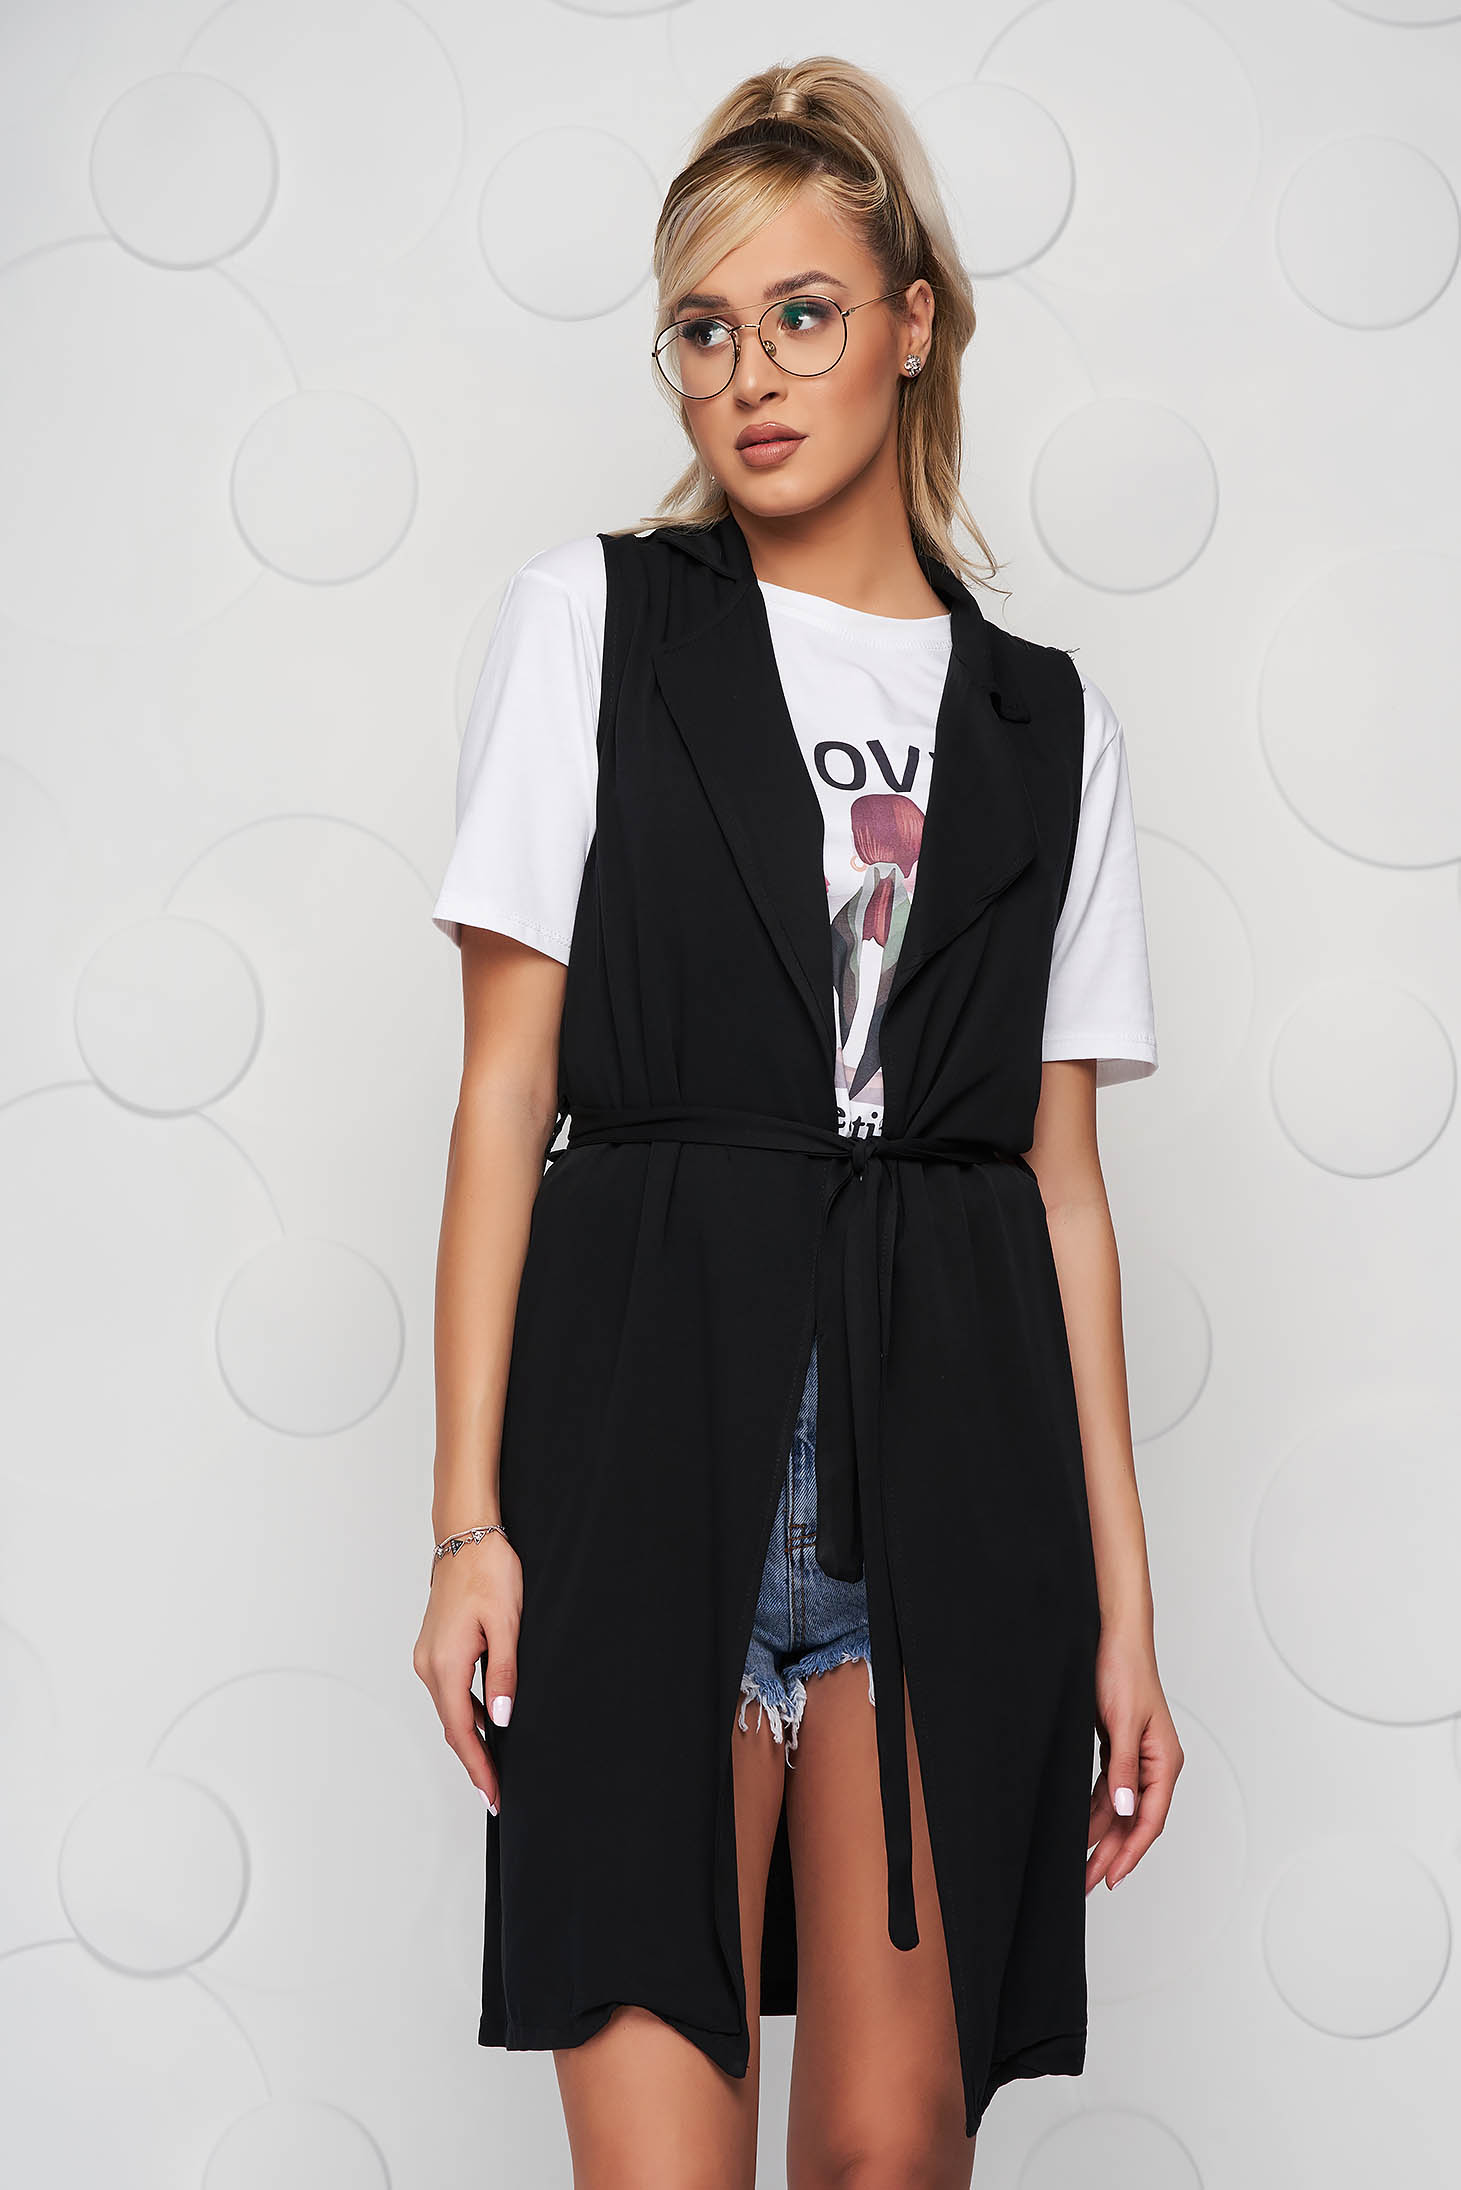 Black gilet casual nonelastic fabric accessorized with tied waistband